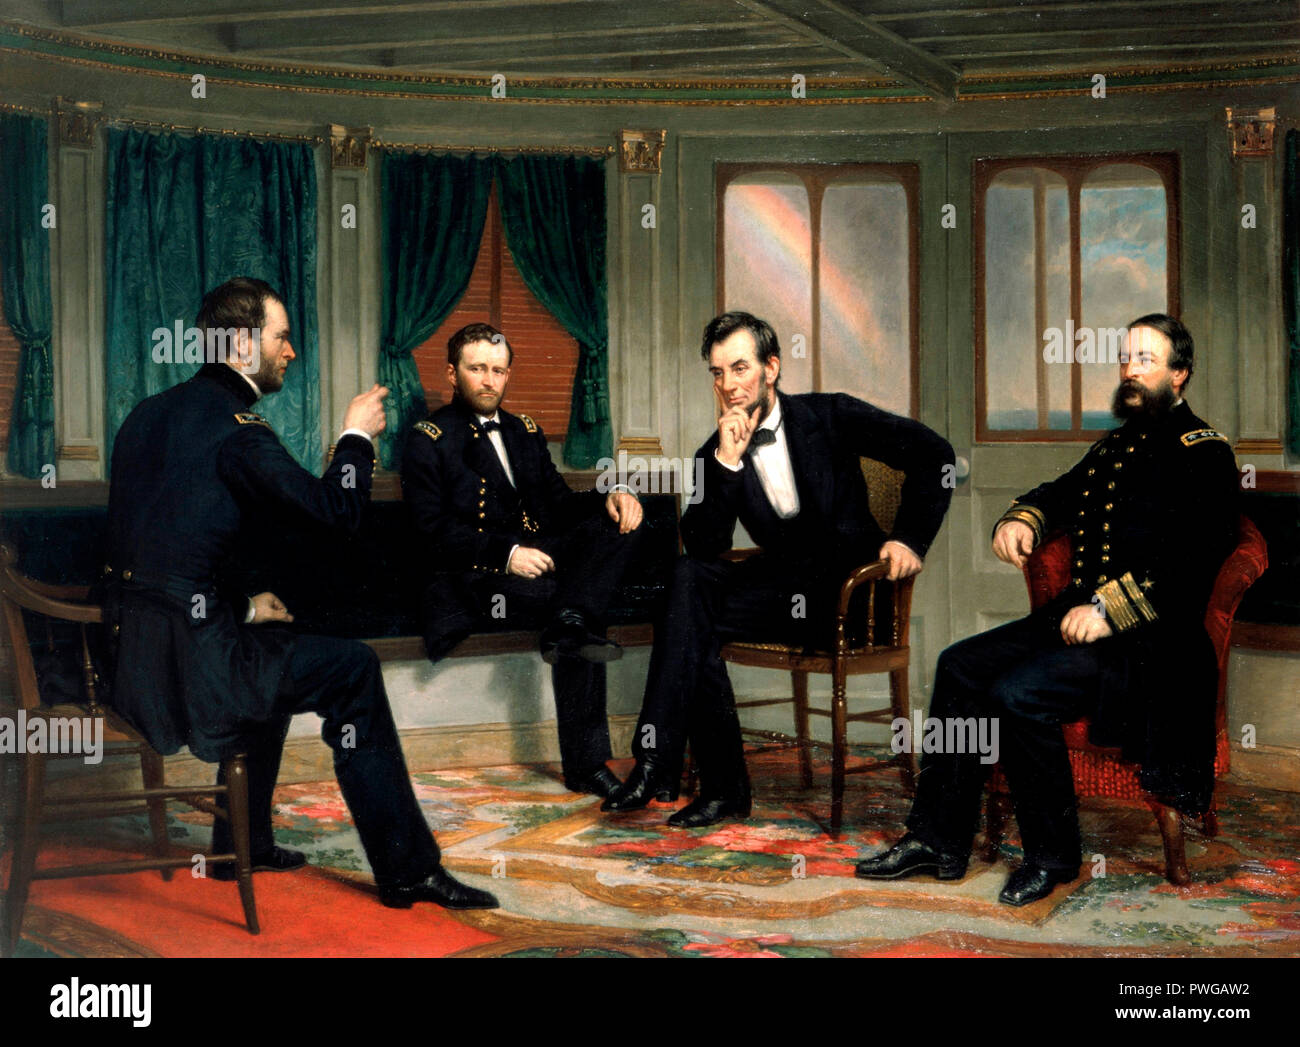 The Peacemakers.  William Tecumseh Sherman,   Ulysses S. Grant, Abraham Lincoln, David Dixon Porter - George Peter Alexander Healy, circa 1868 - Stock Image